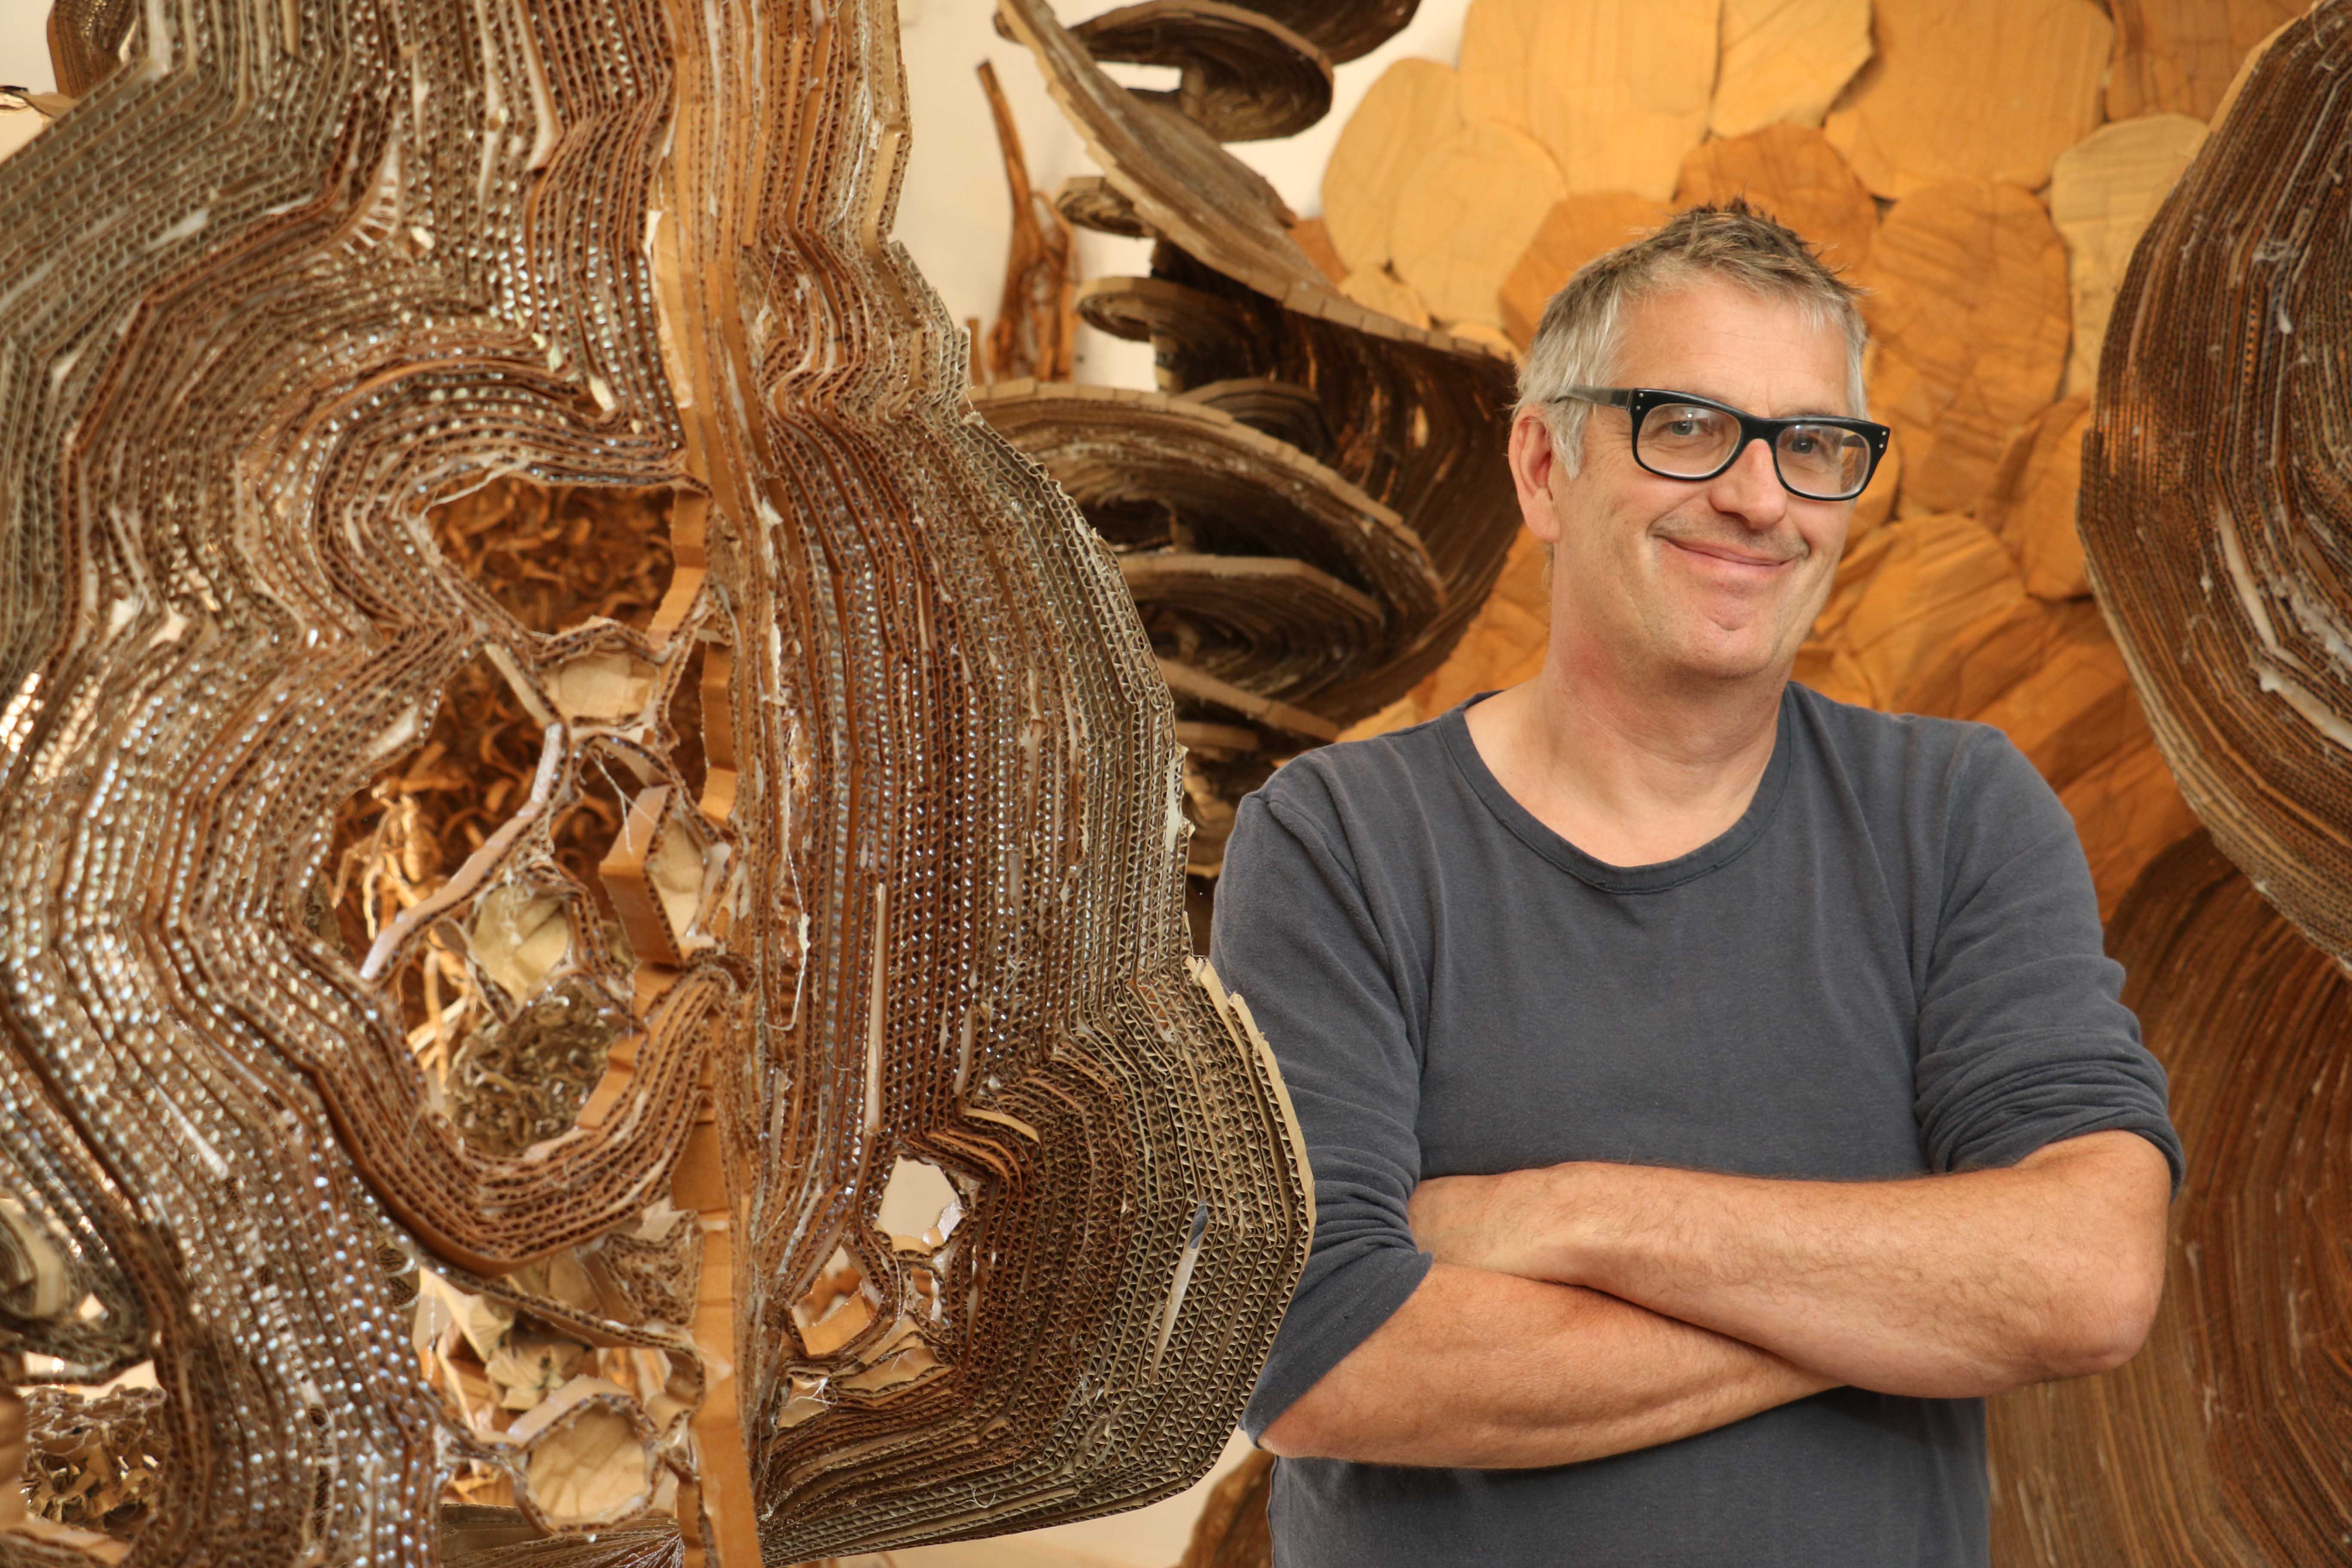 Henry Klimowicz is a Millerton, NY artist who has been creating art with corrugated cardboard for over twenty years. He reflects on his choice of medium.